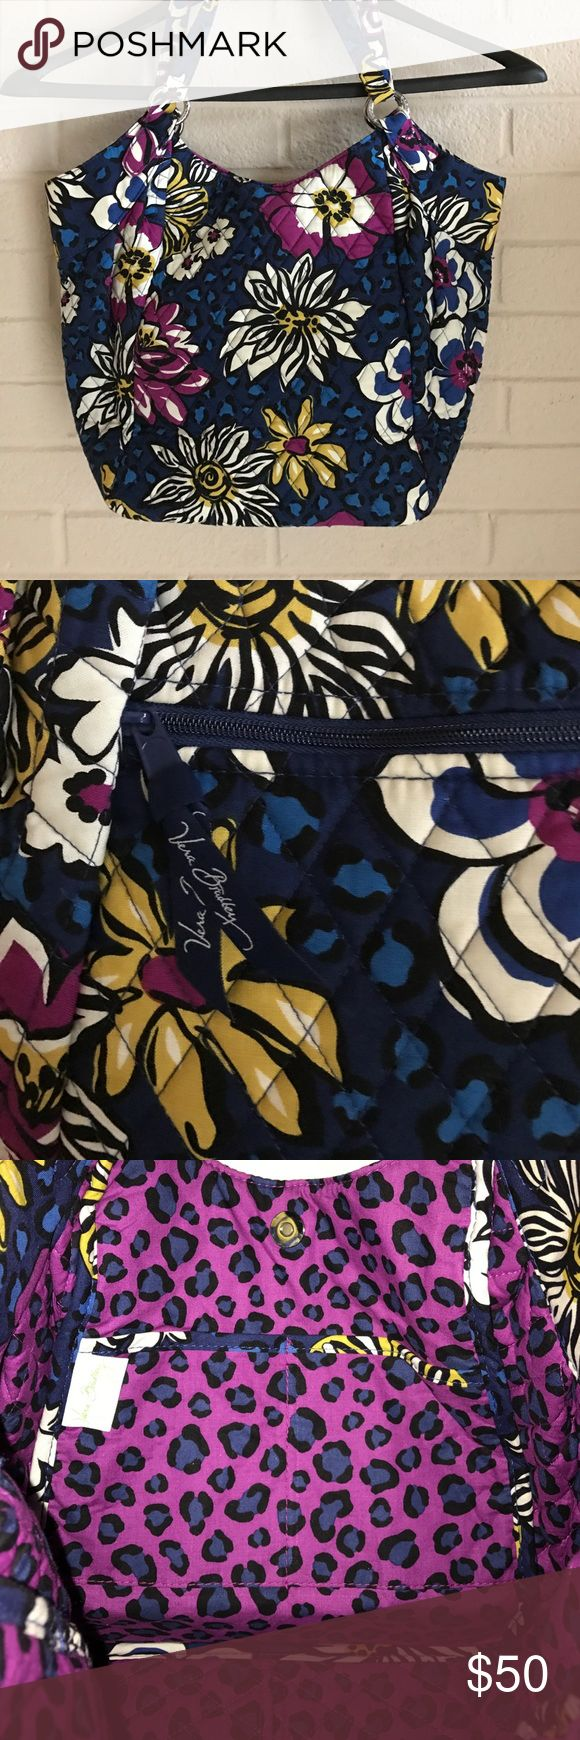 Listing Vera Bradley Tote NWOT Beautiful like new Vera Bradley Tote Bag with front zipper for keys, 2 inside pockets for cellphone and miscellaneous items 12x9 New without Tags Vera Bradley Bags Totes